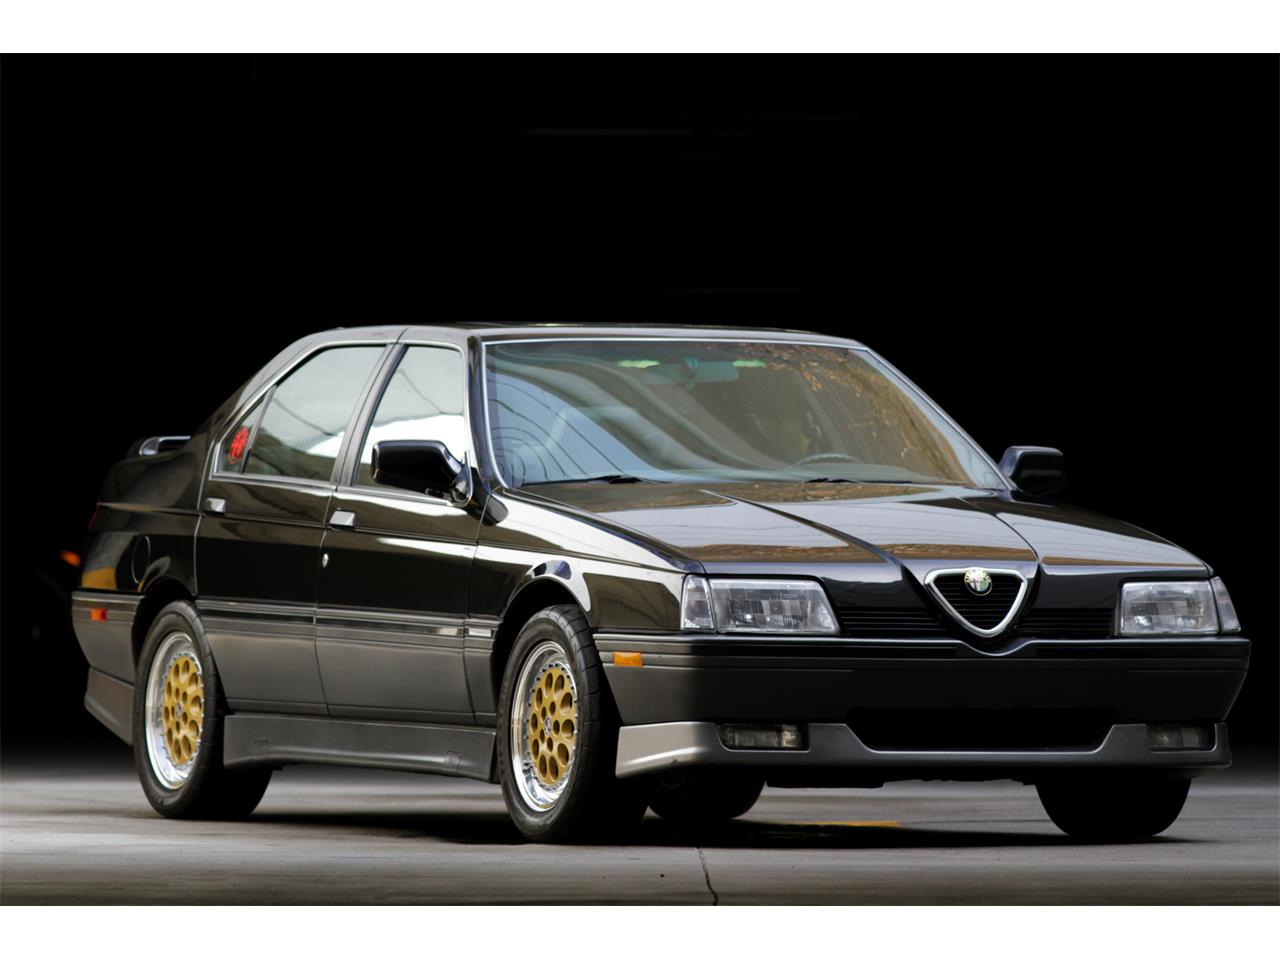 Alfa Romeo For Sale ClassicCarscom CC - Alfa romeo 164 for sale